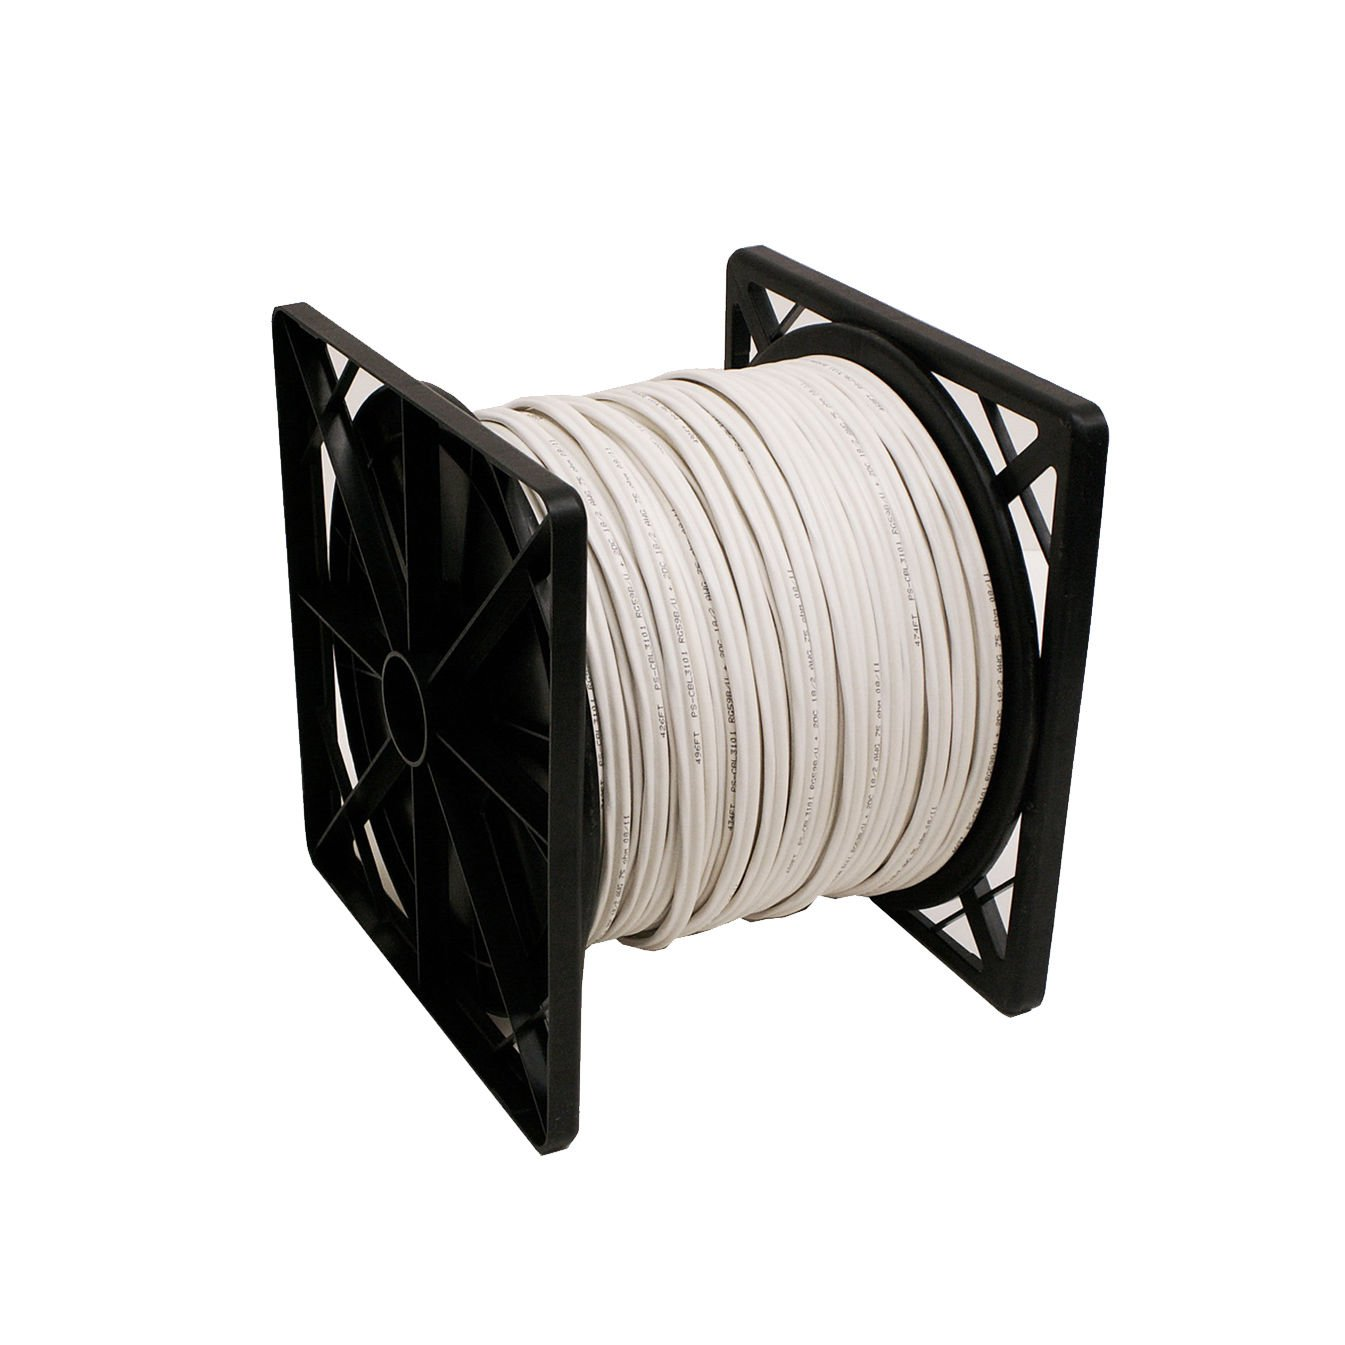 20AWG+18/2 CCTV SECURITY CAMERA WIRE SIAMESE COAXIAL CABLE 500FT BULK WHITE RG59